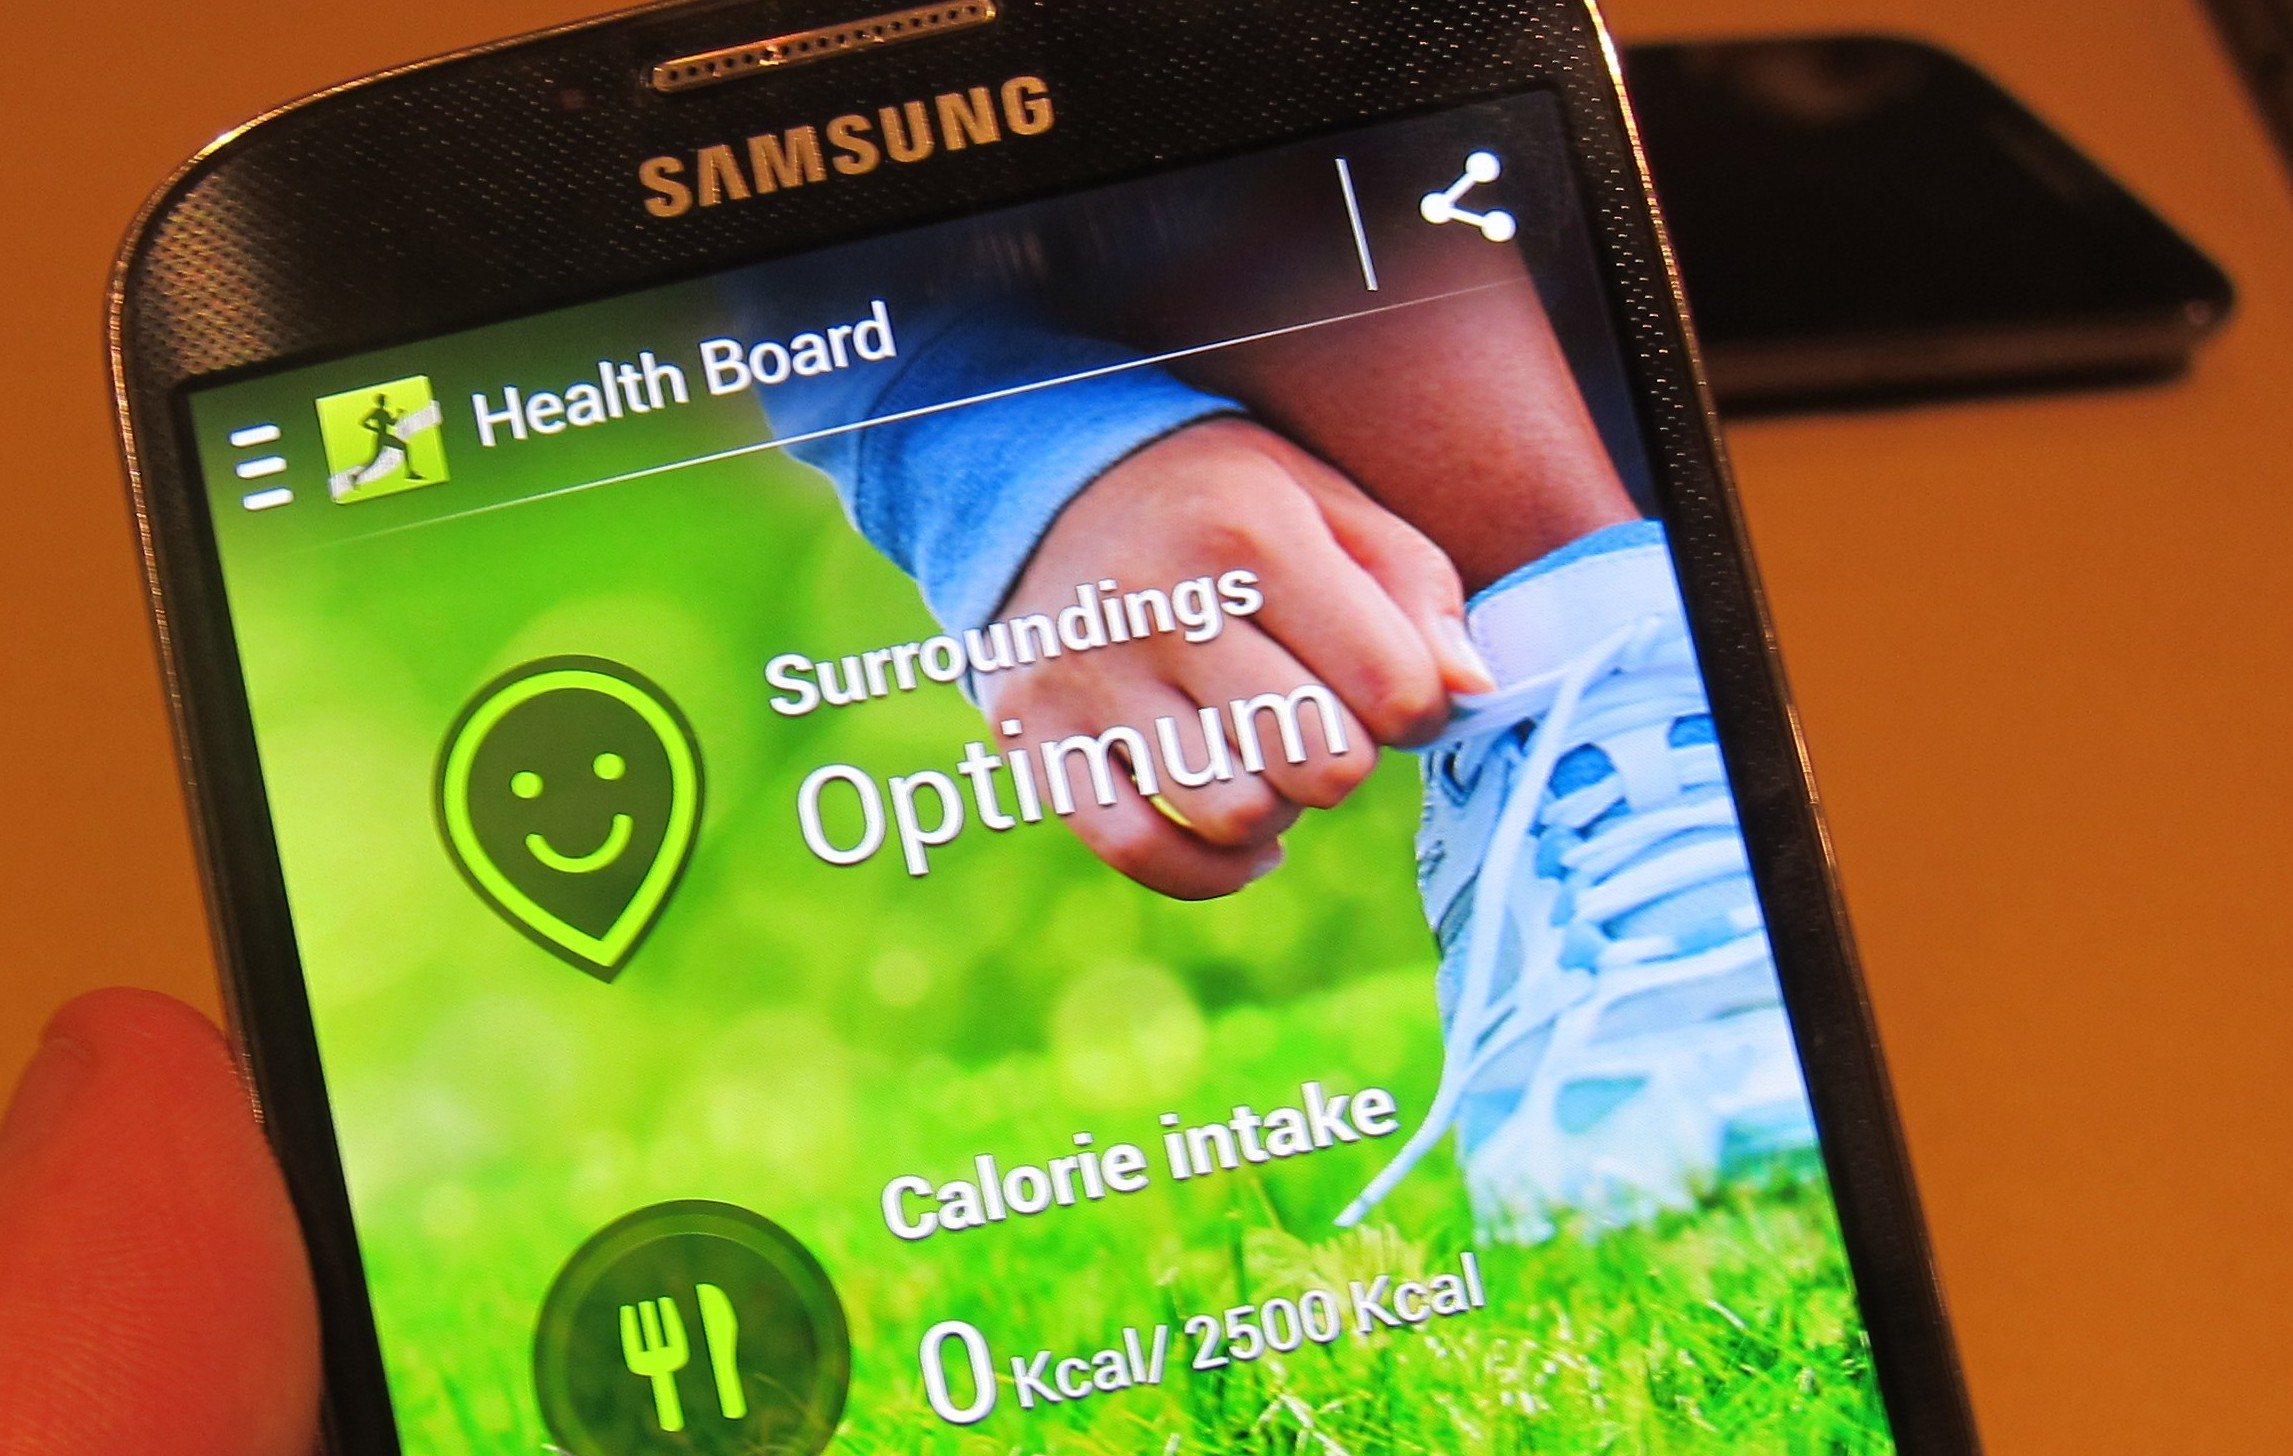 S-Health on the Galaxy S 4